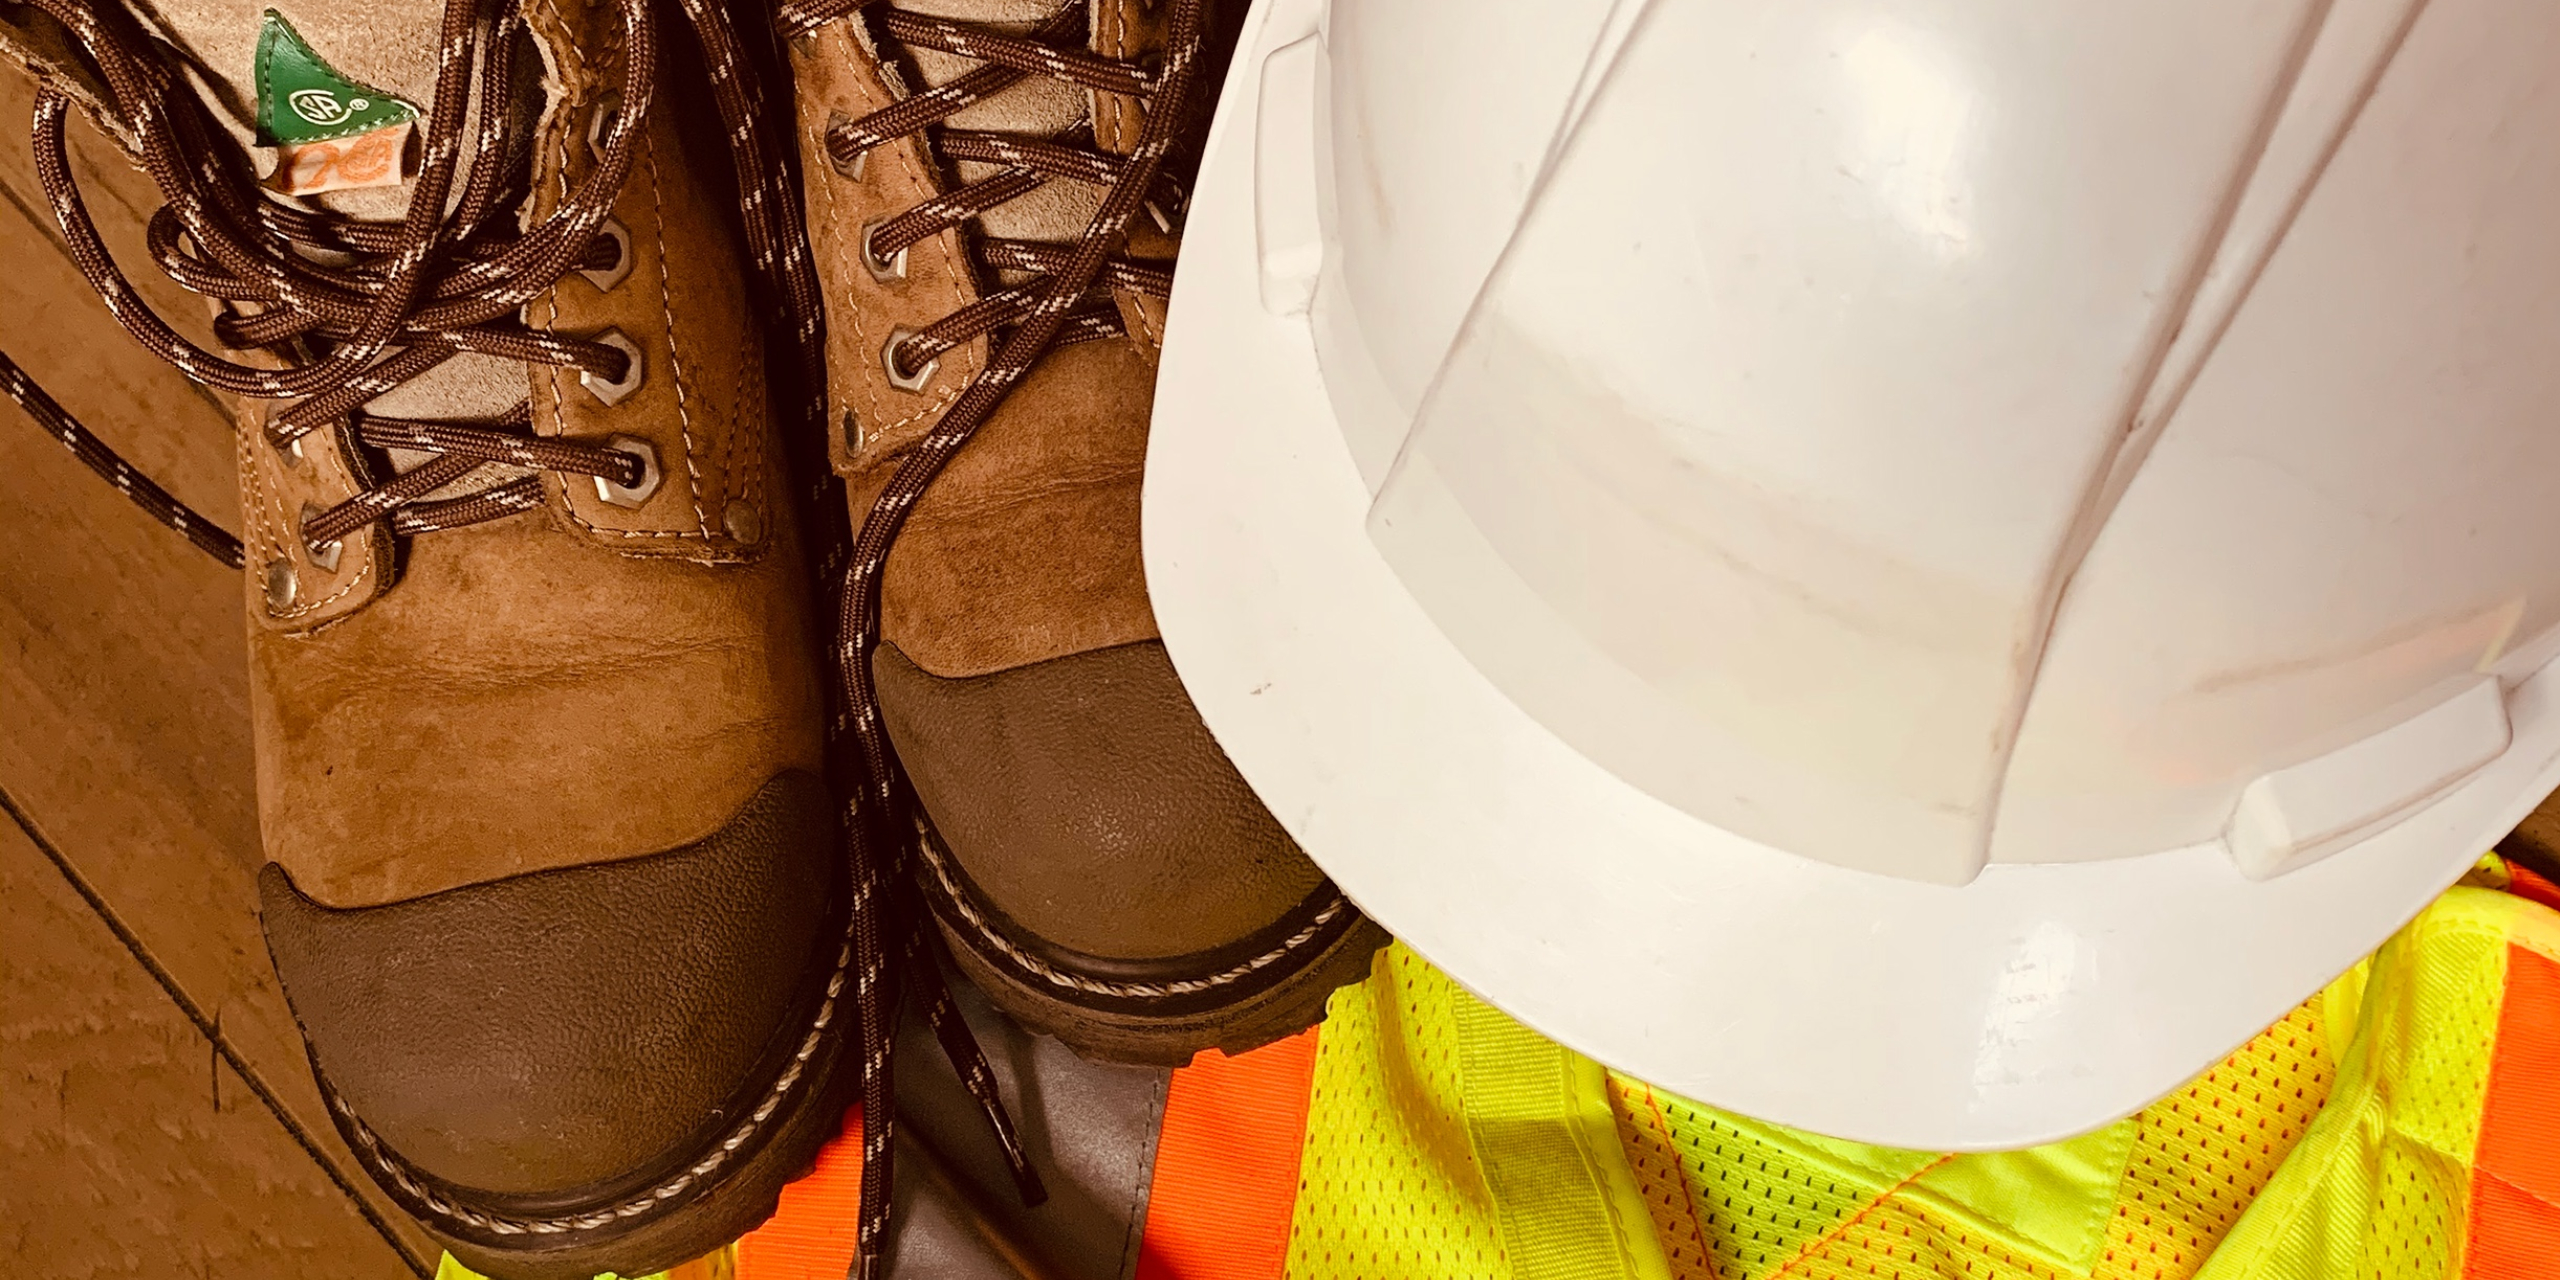 Picture of a hard hat, safety vest and safety boots